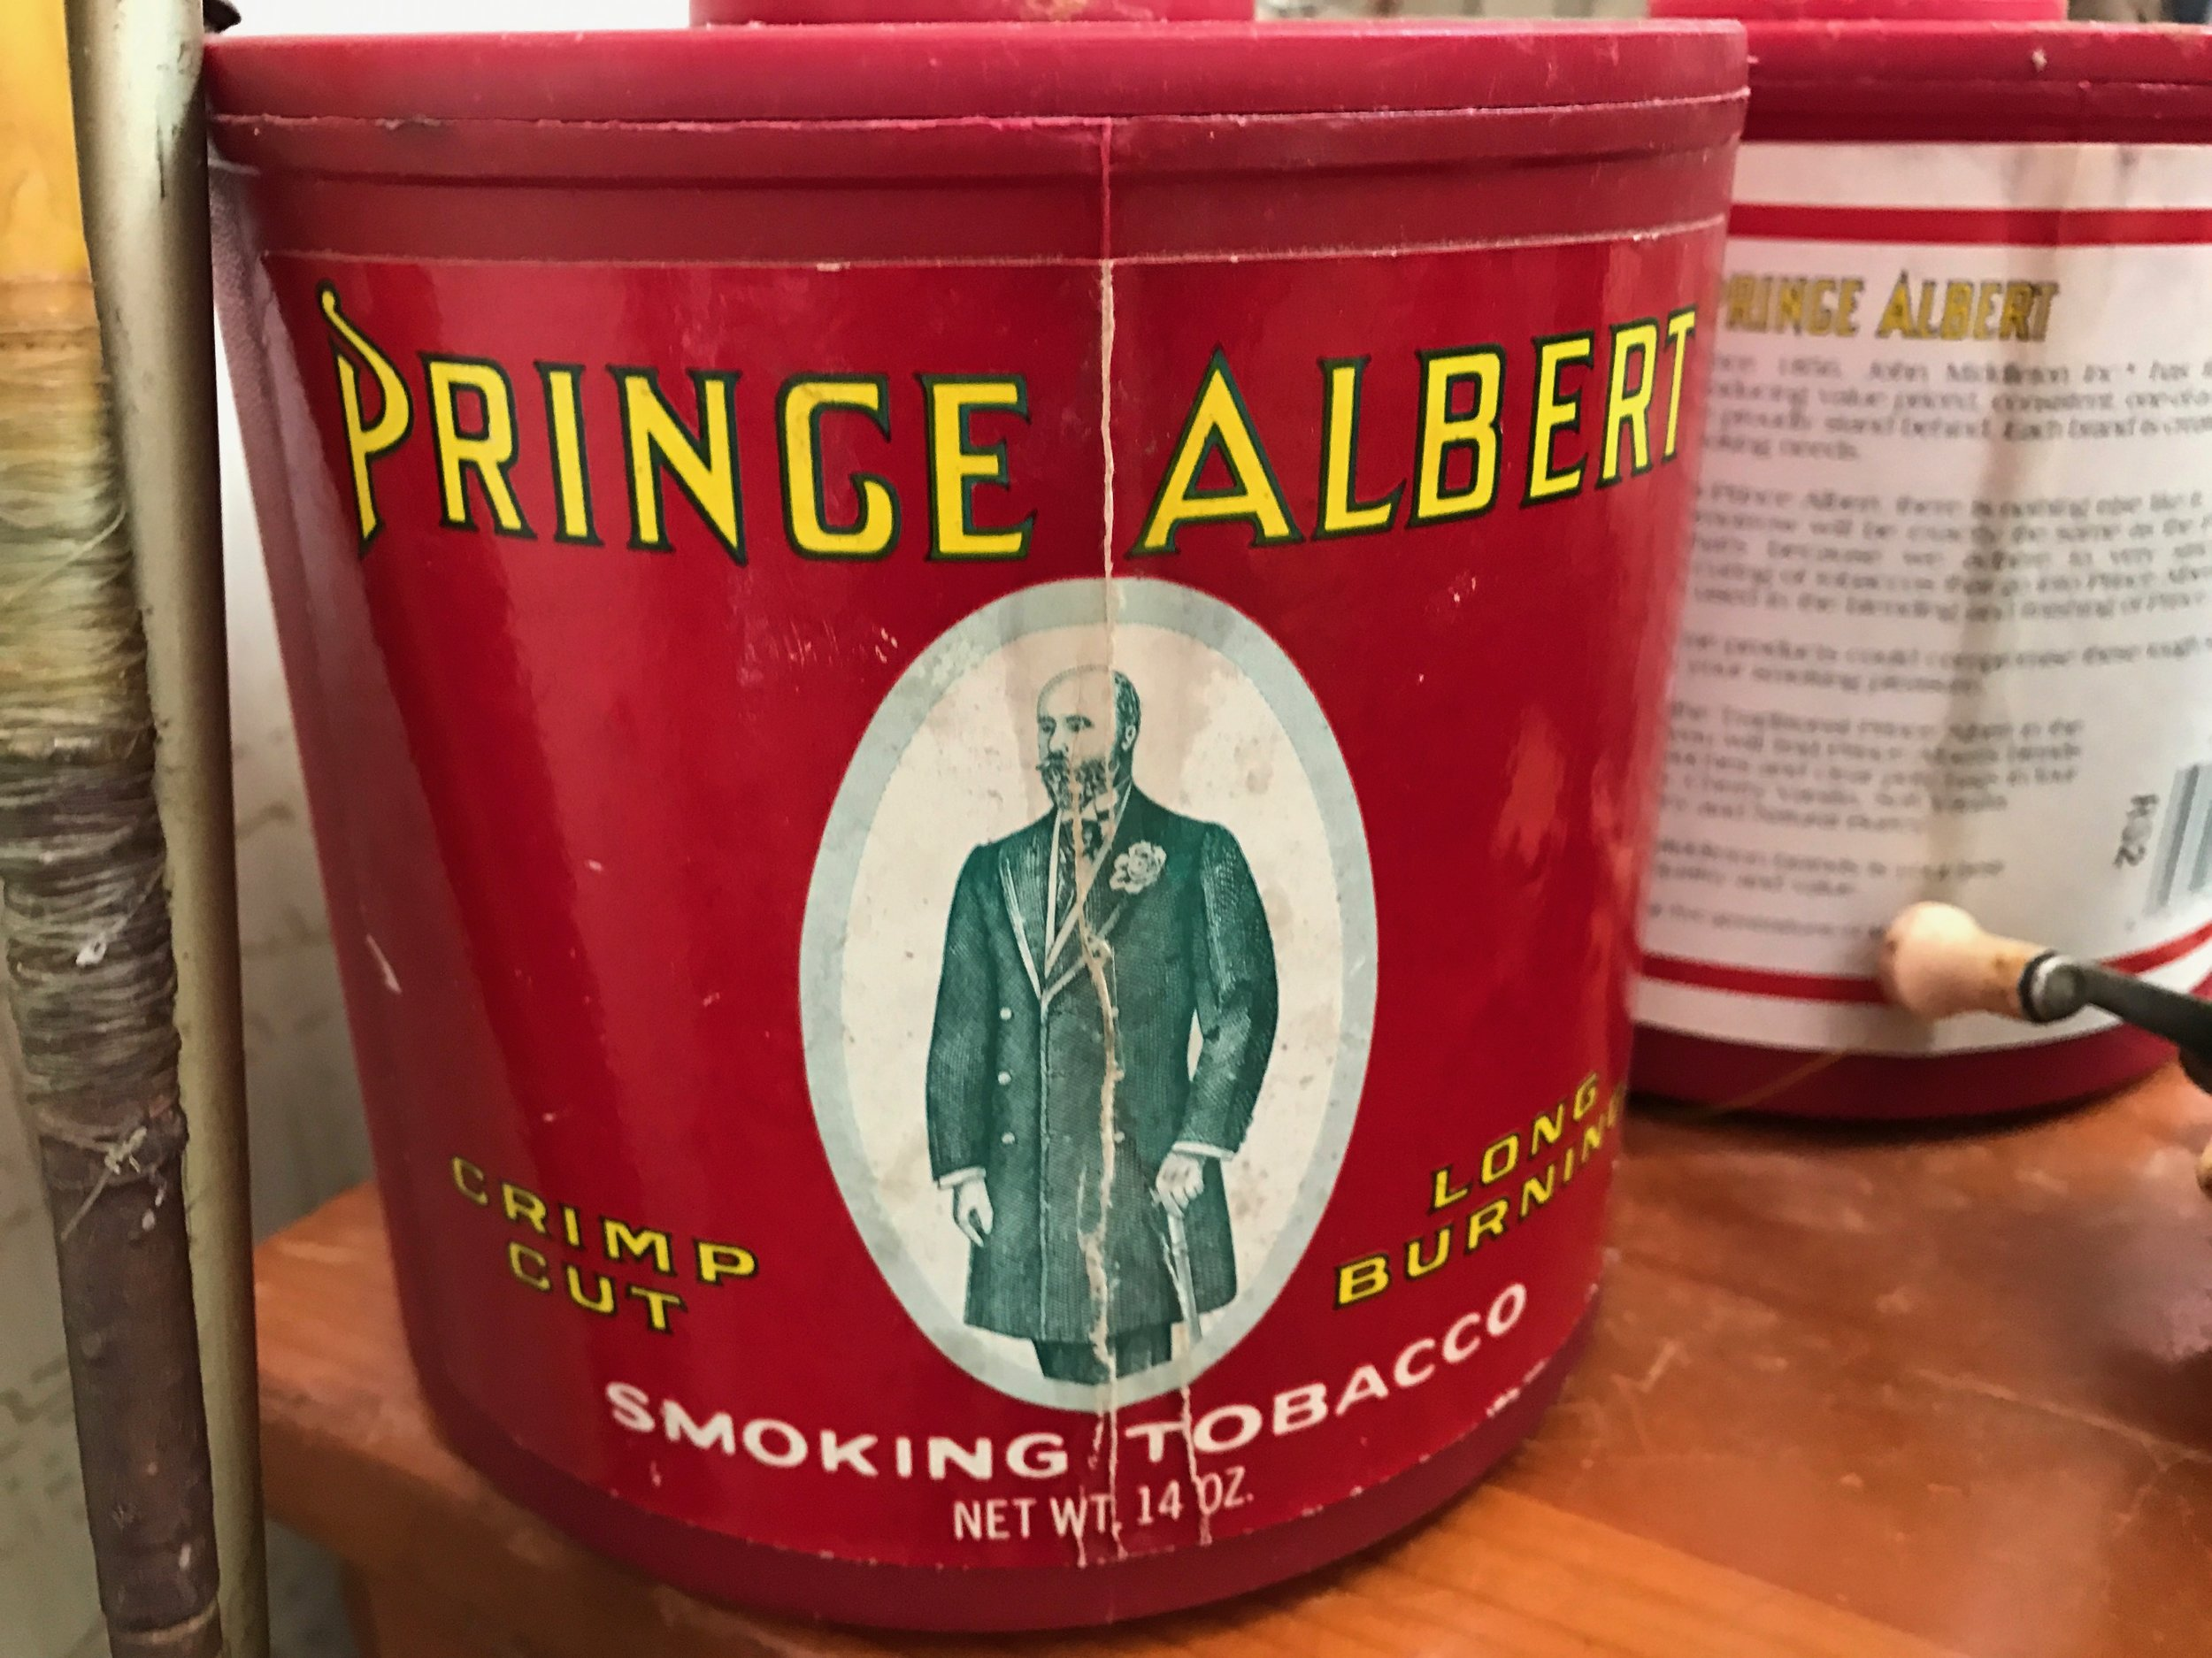 Prince Albert Crimp Cut Long Burning Smoking Tobacco